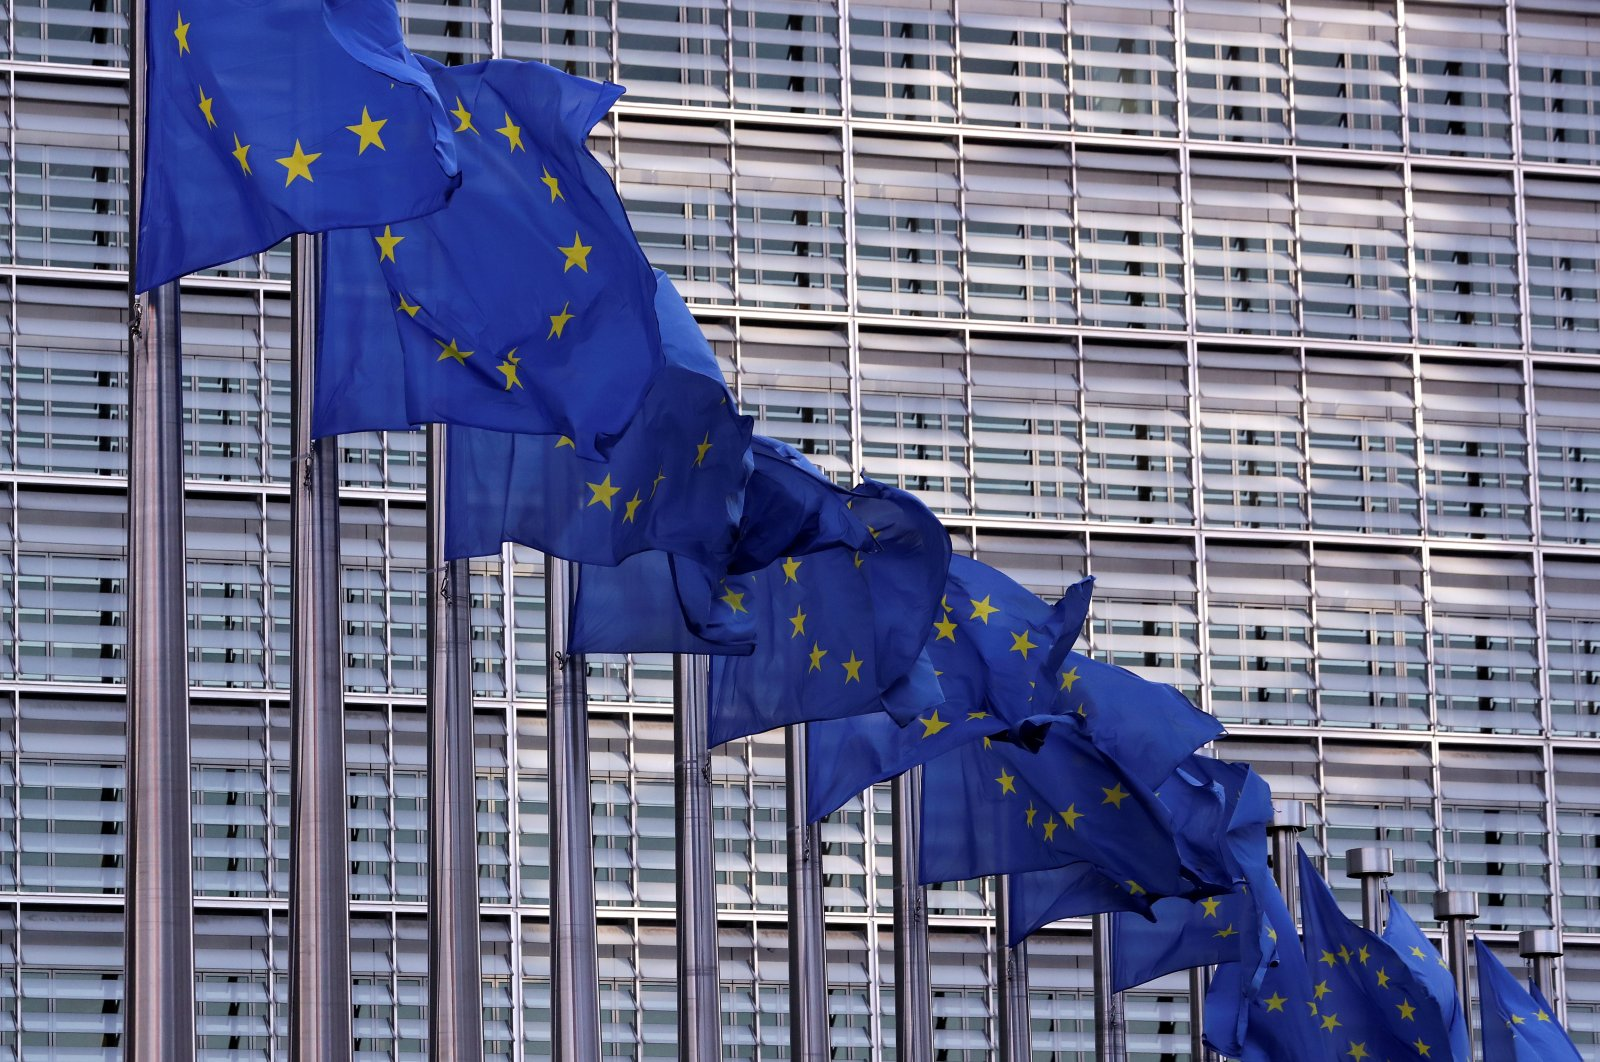 European Union flags fly outside the European Commission headquarters in Brussels, Belgium, February 19, 2020. (Reuters Photo)